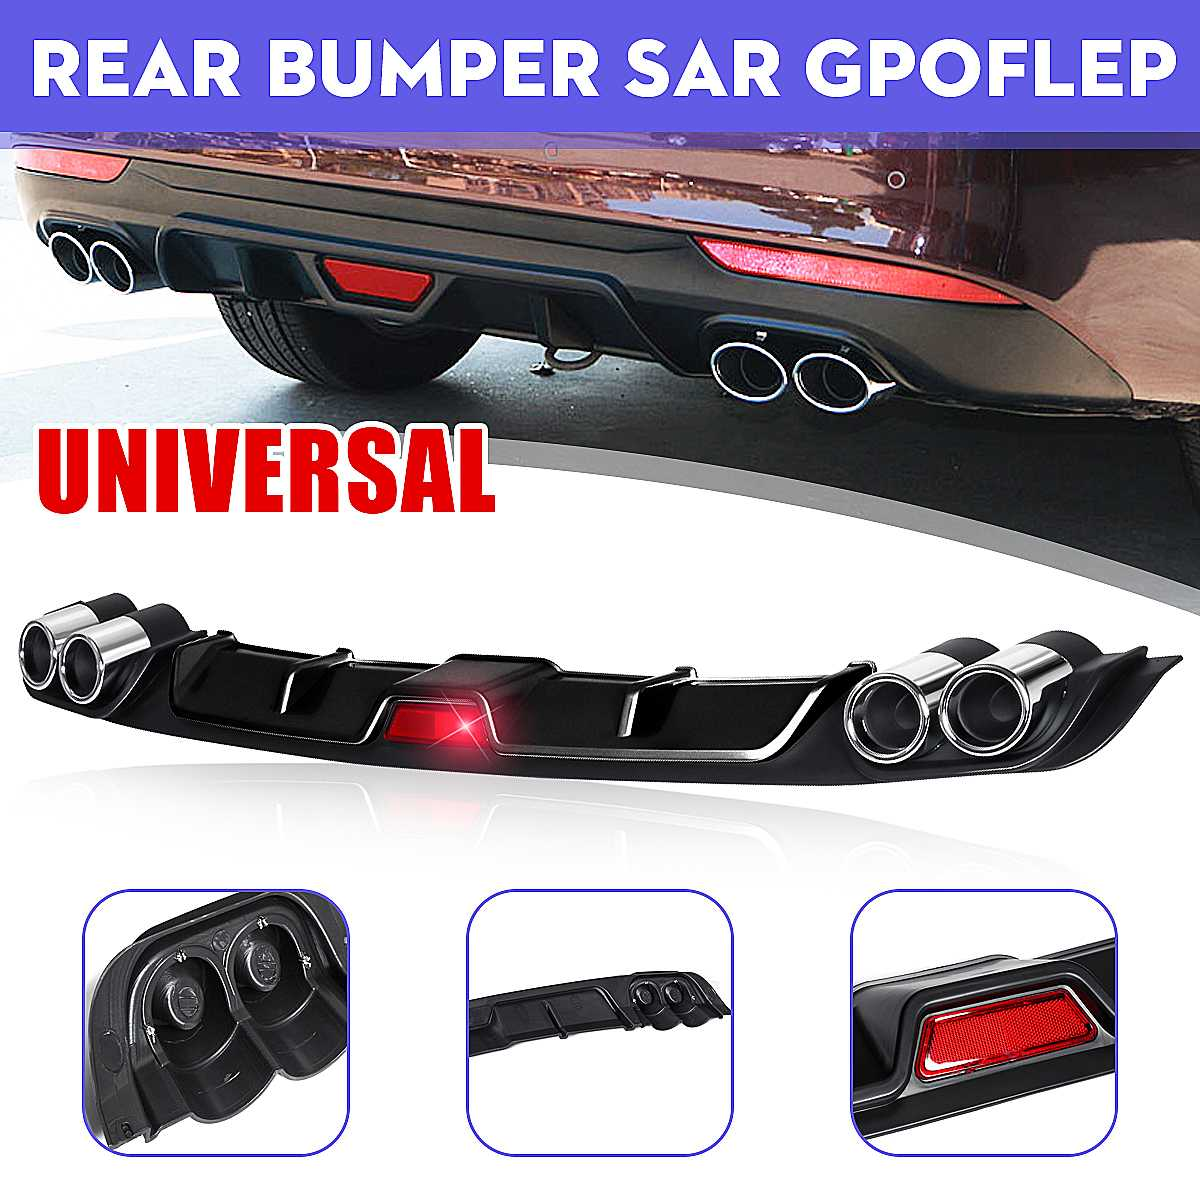 Universal Car Rear Bumper Diffuser Lip spoiler Canard for BMW E46 E60 E90 for Ford Focus 2 for Audi A3 Car-Styling ABS Plastic image